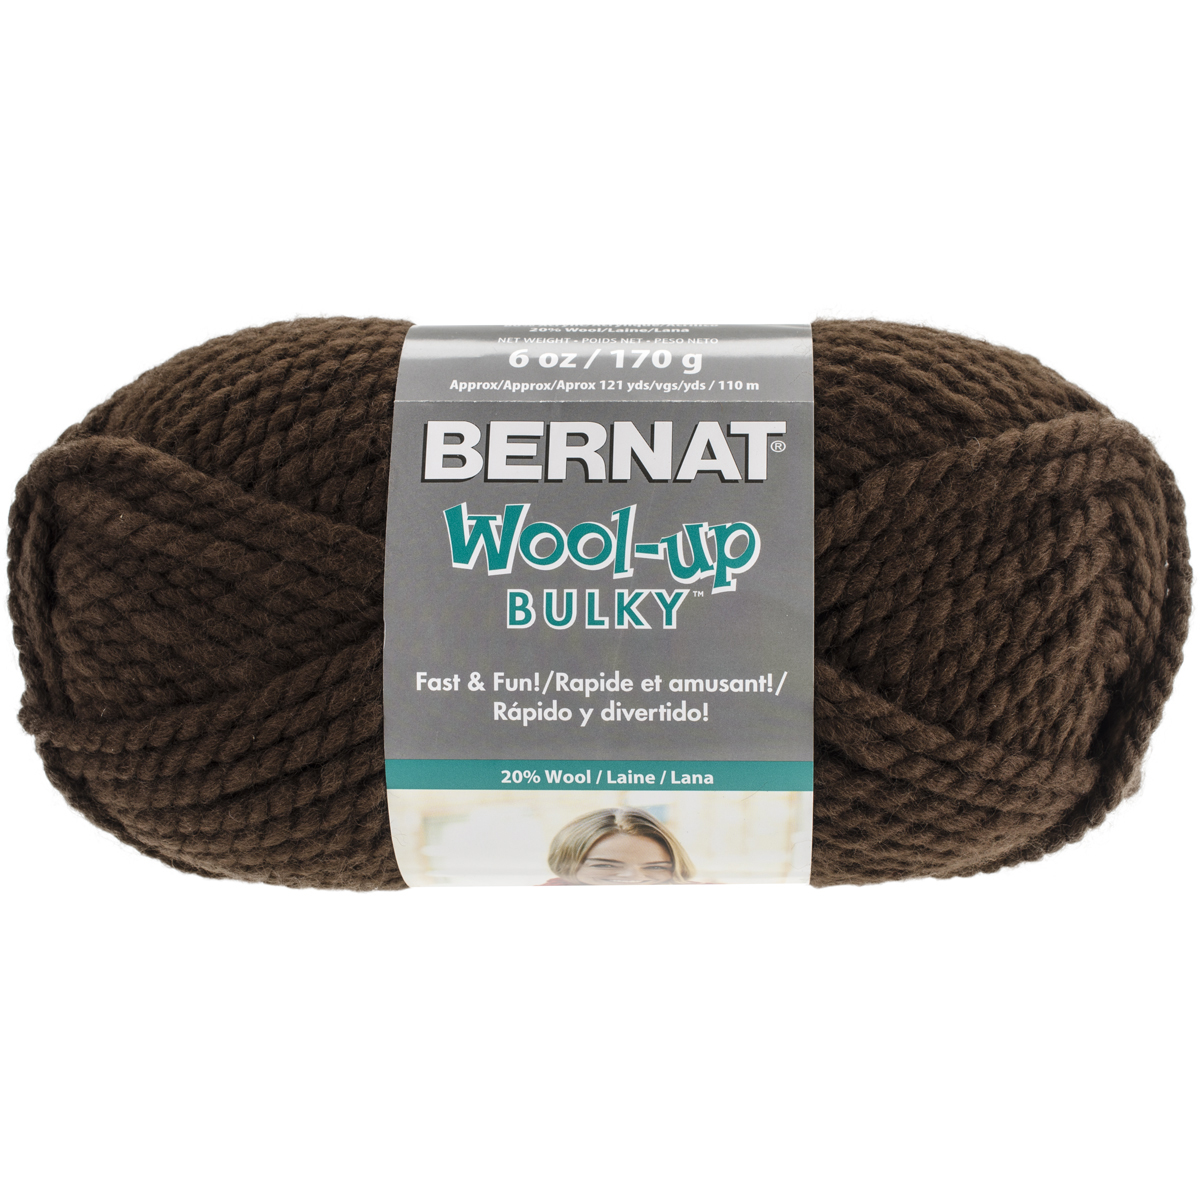 Spinrite Wool-Up Bulky Yarn, Brown Multi-Colored